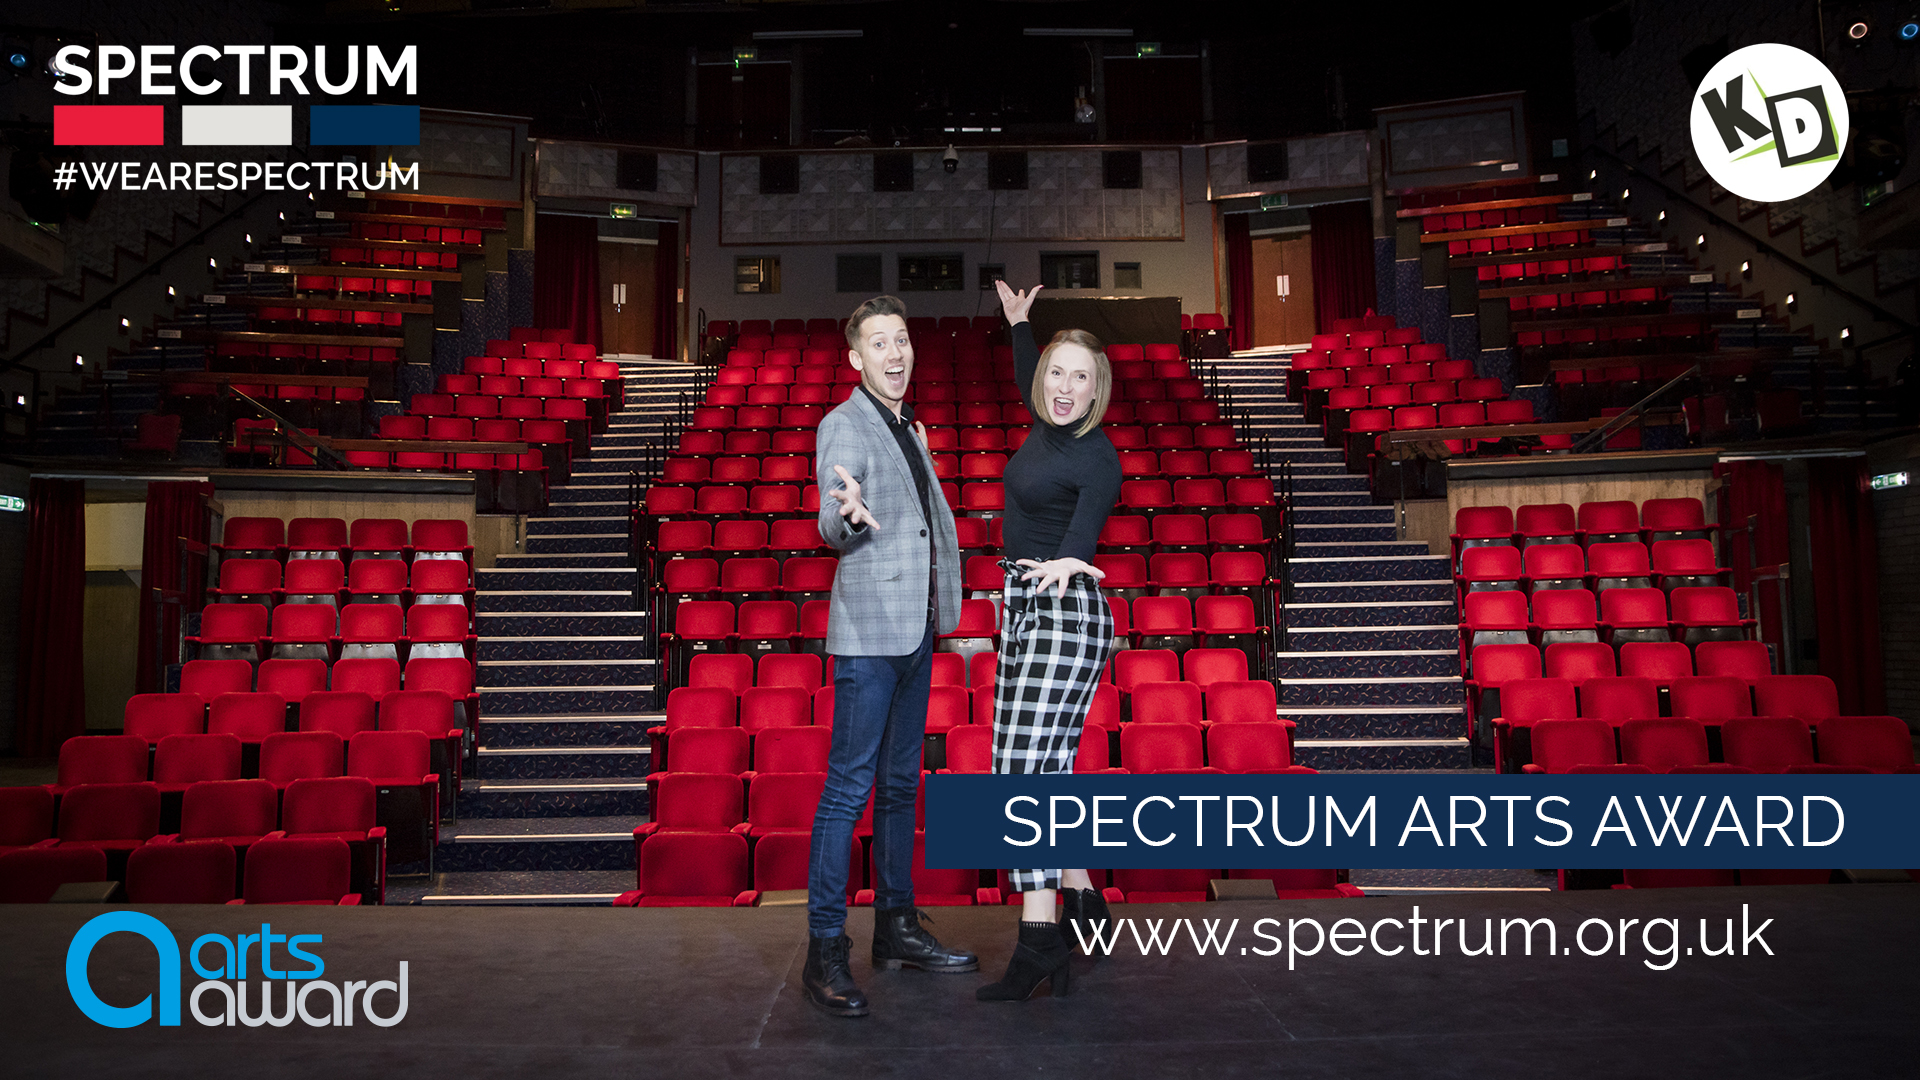 Spectrum Arts Award